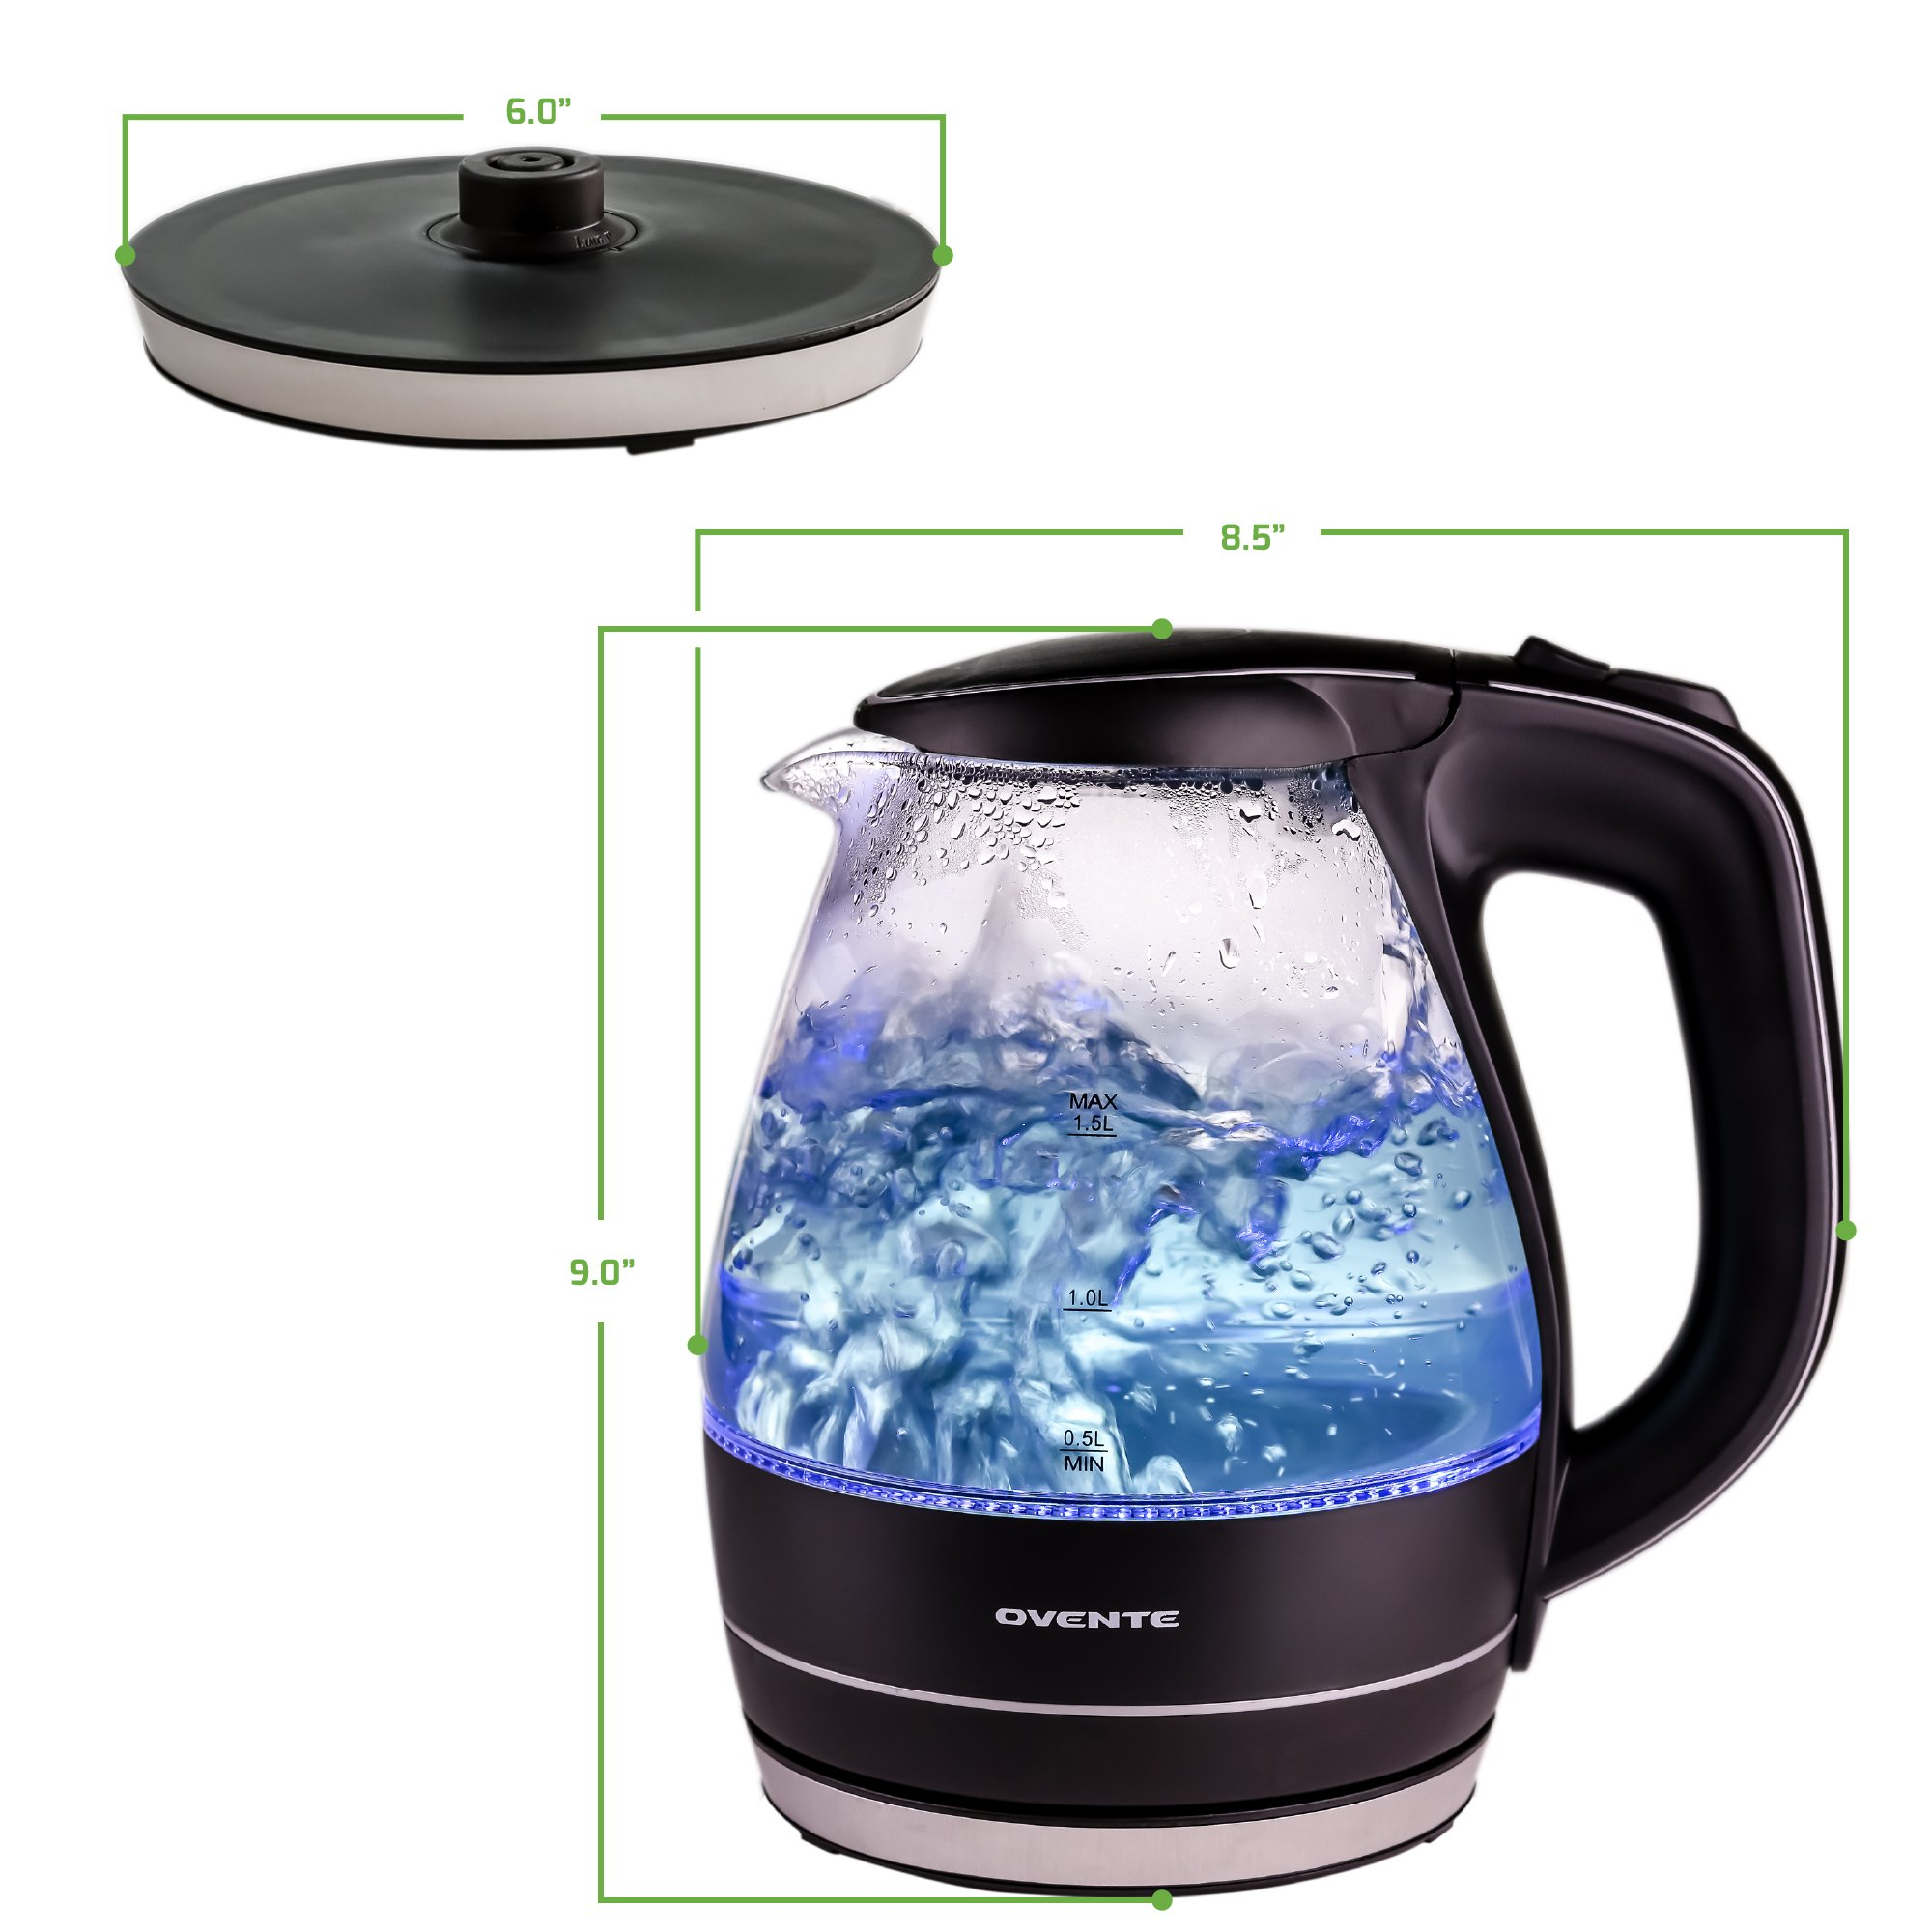 Ovente 1.5L BPA-Free Glass Electric Kettle, Fast Heating with Auto Shut-Off and Boil-Dry Protection, Cordless, LED Light Indicator, Black (KG83B) by Ovente (Image #10)